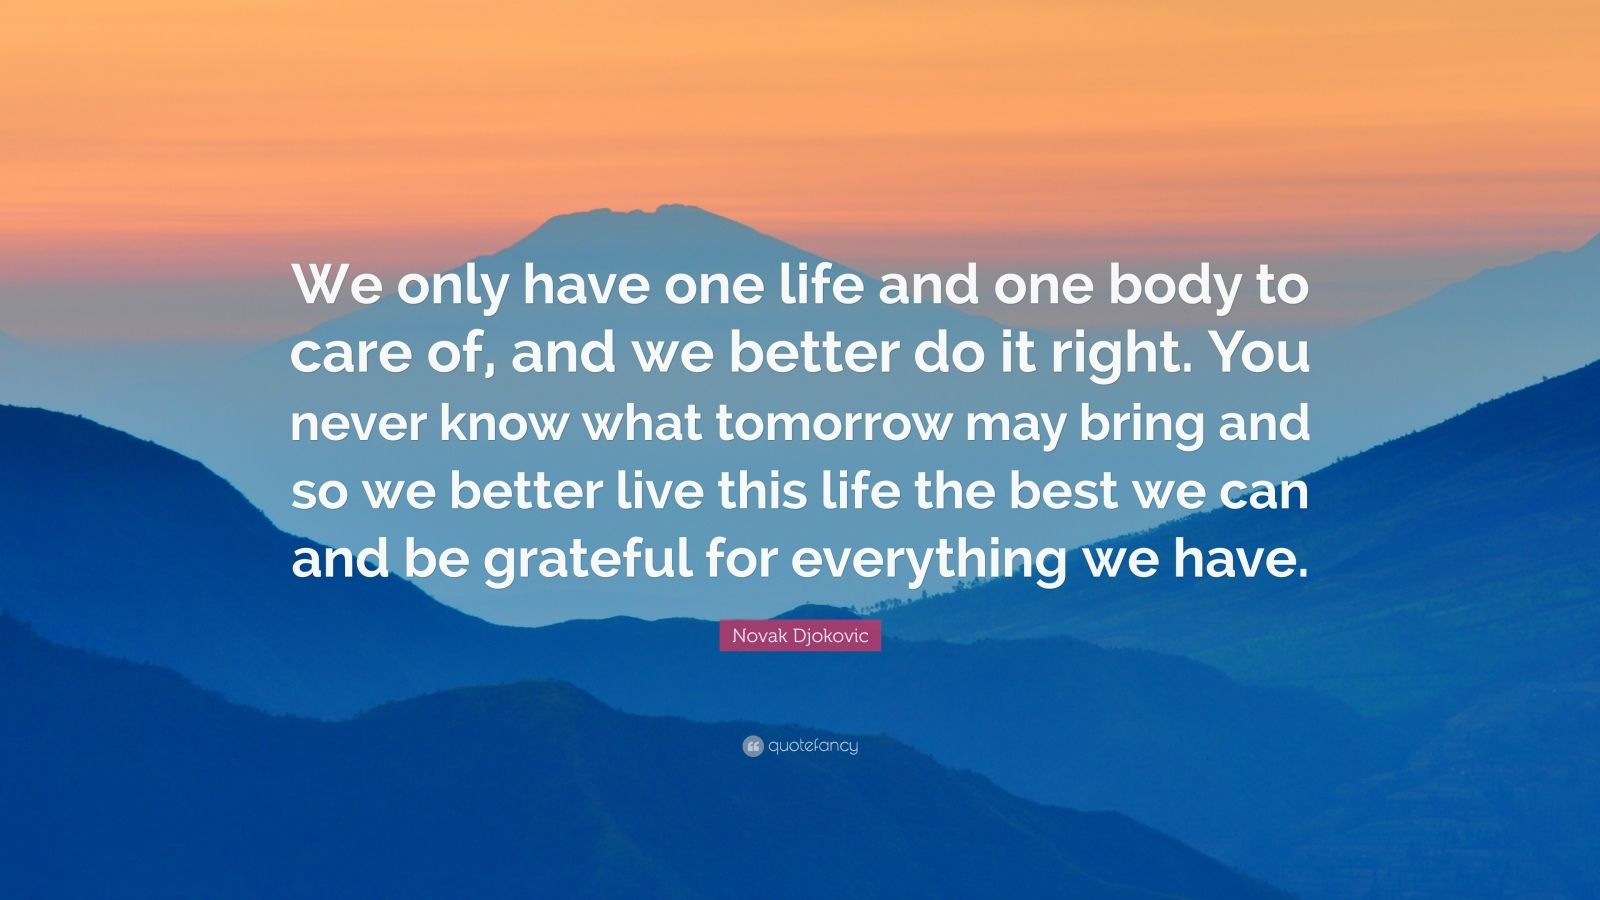 """Novak Djokovic Quote: """"We only have one life and one body to care of, and we better do it right. You never know what tomorrow may bring and so we better live this life the best we can and be grateful for everything we have."""""""